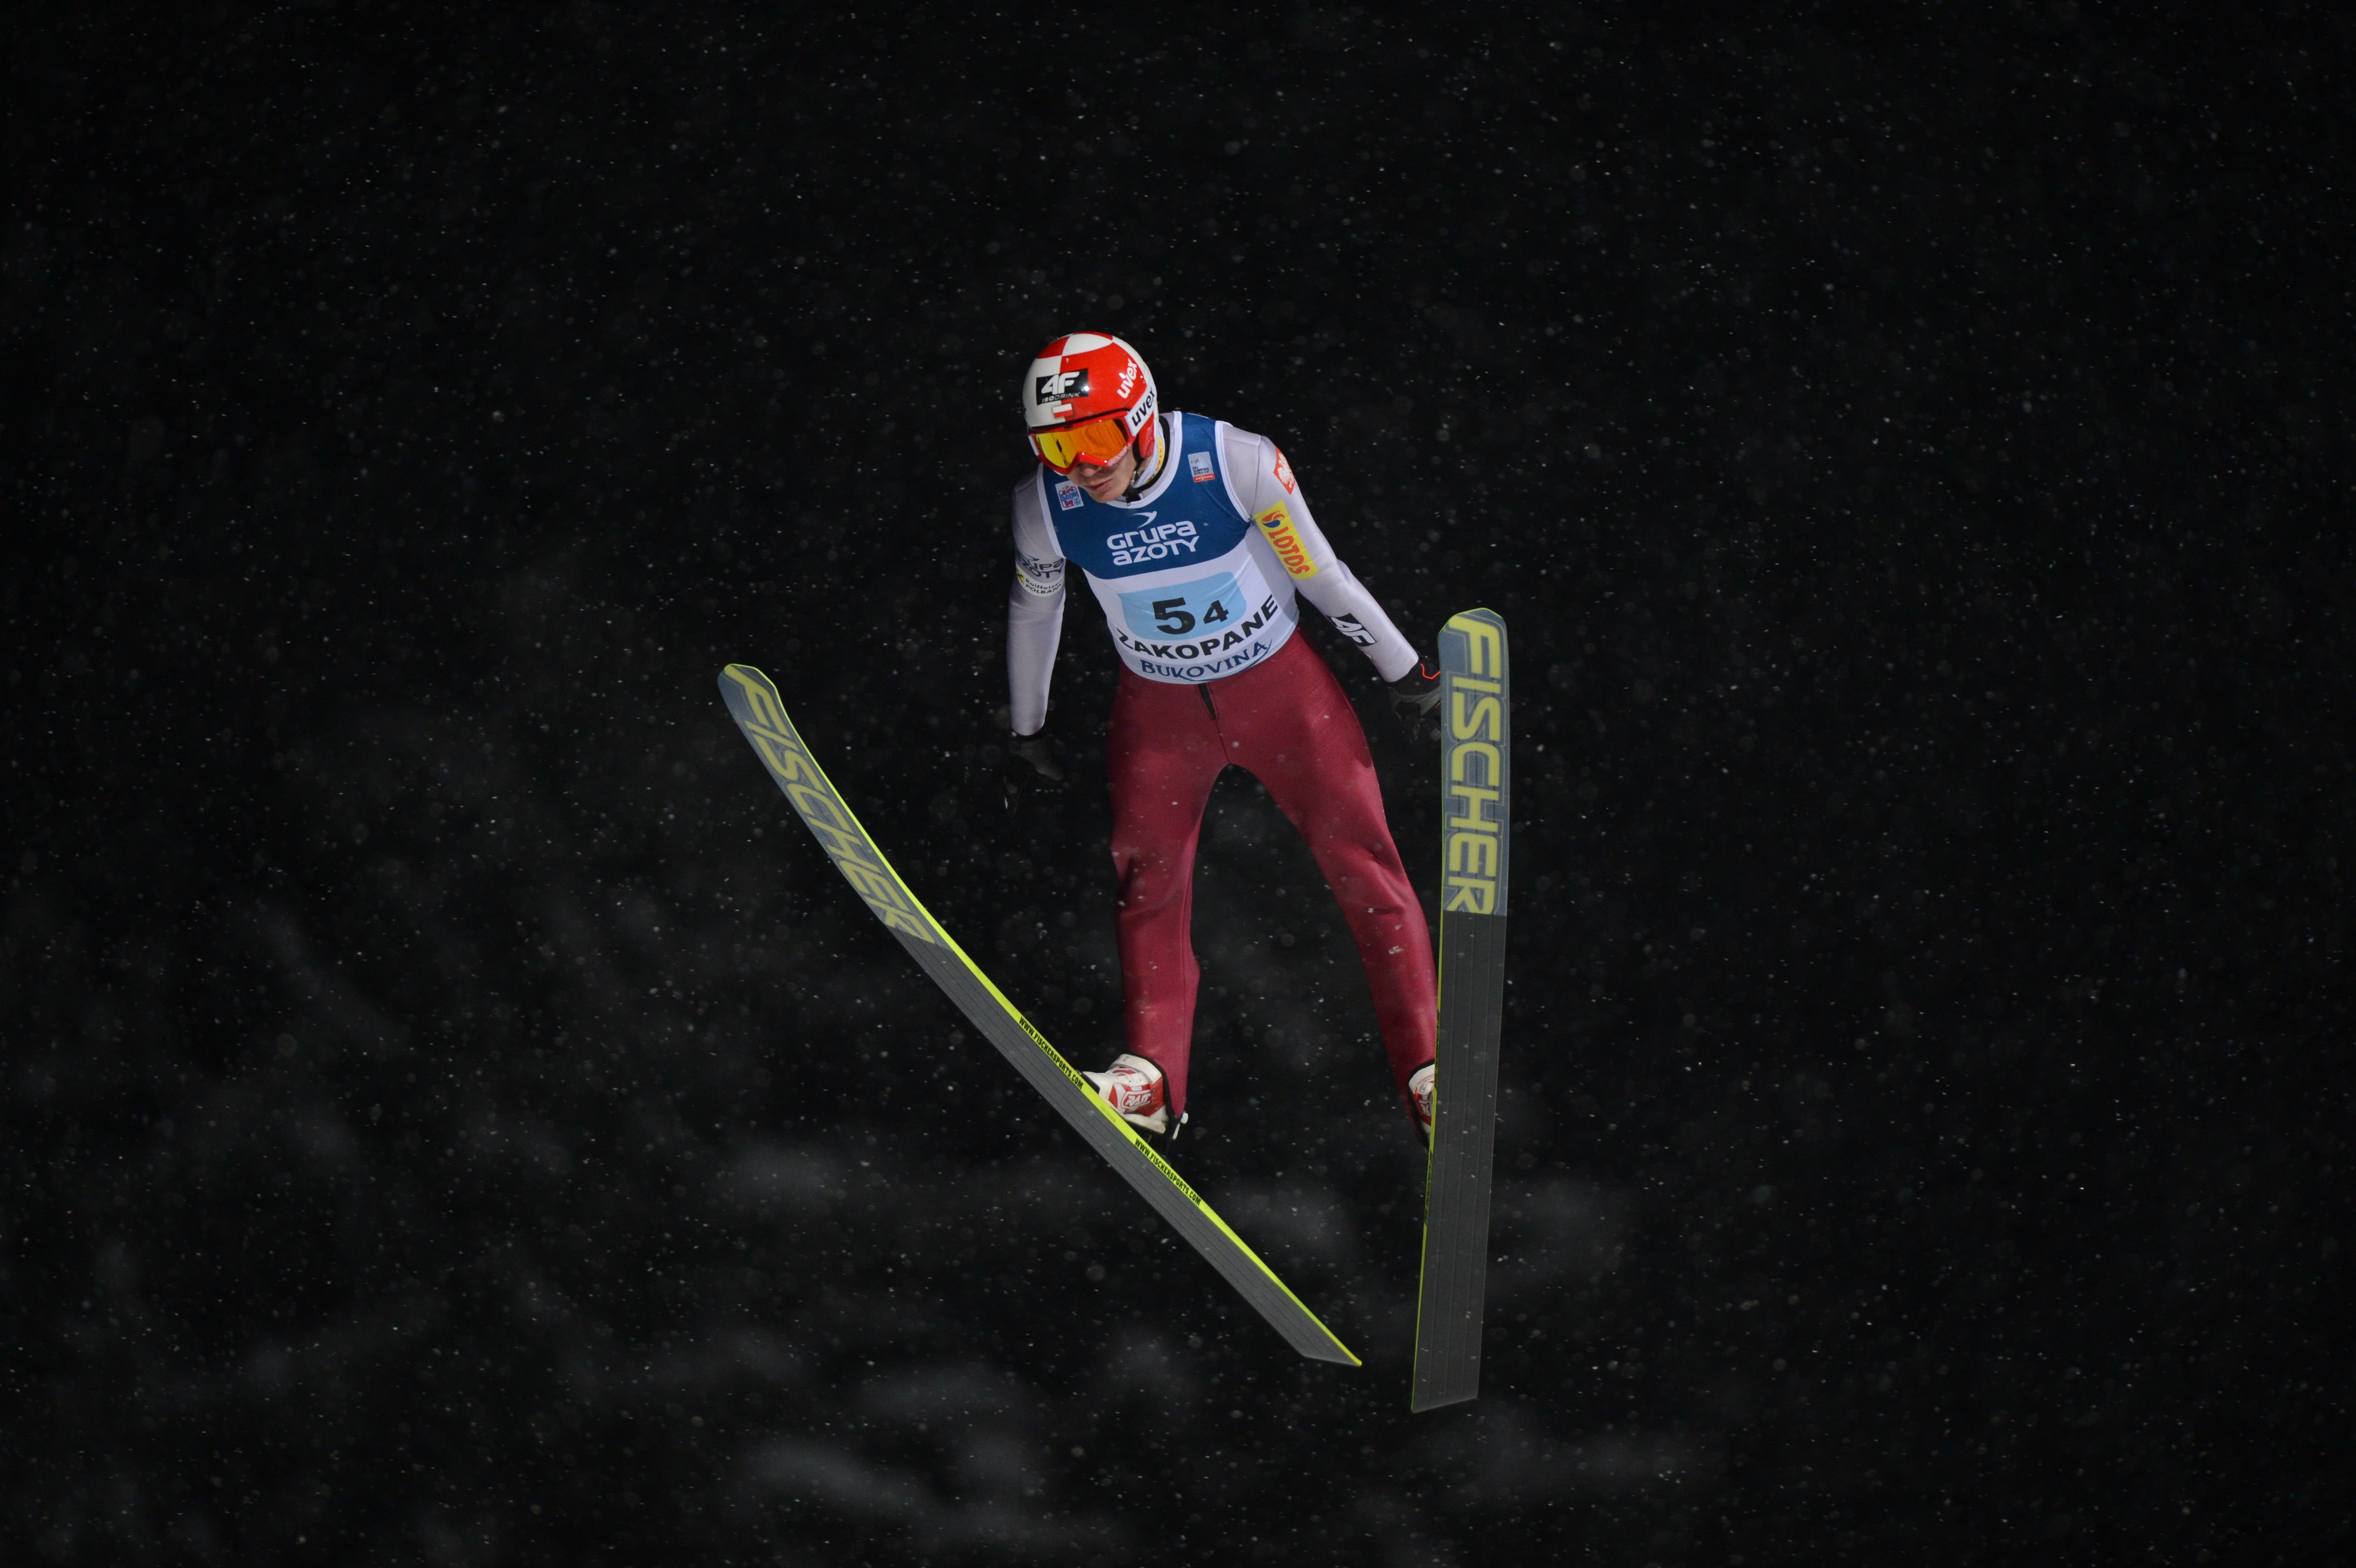 4928x3280 - Kamil Stoch Wallpapers 4